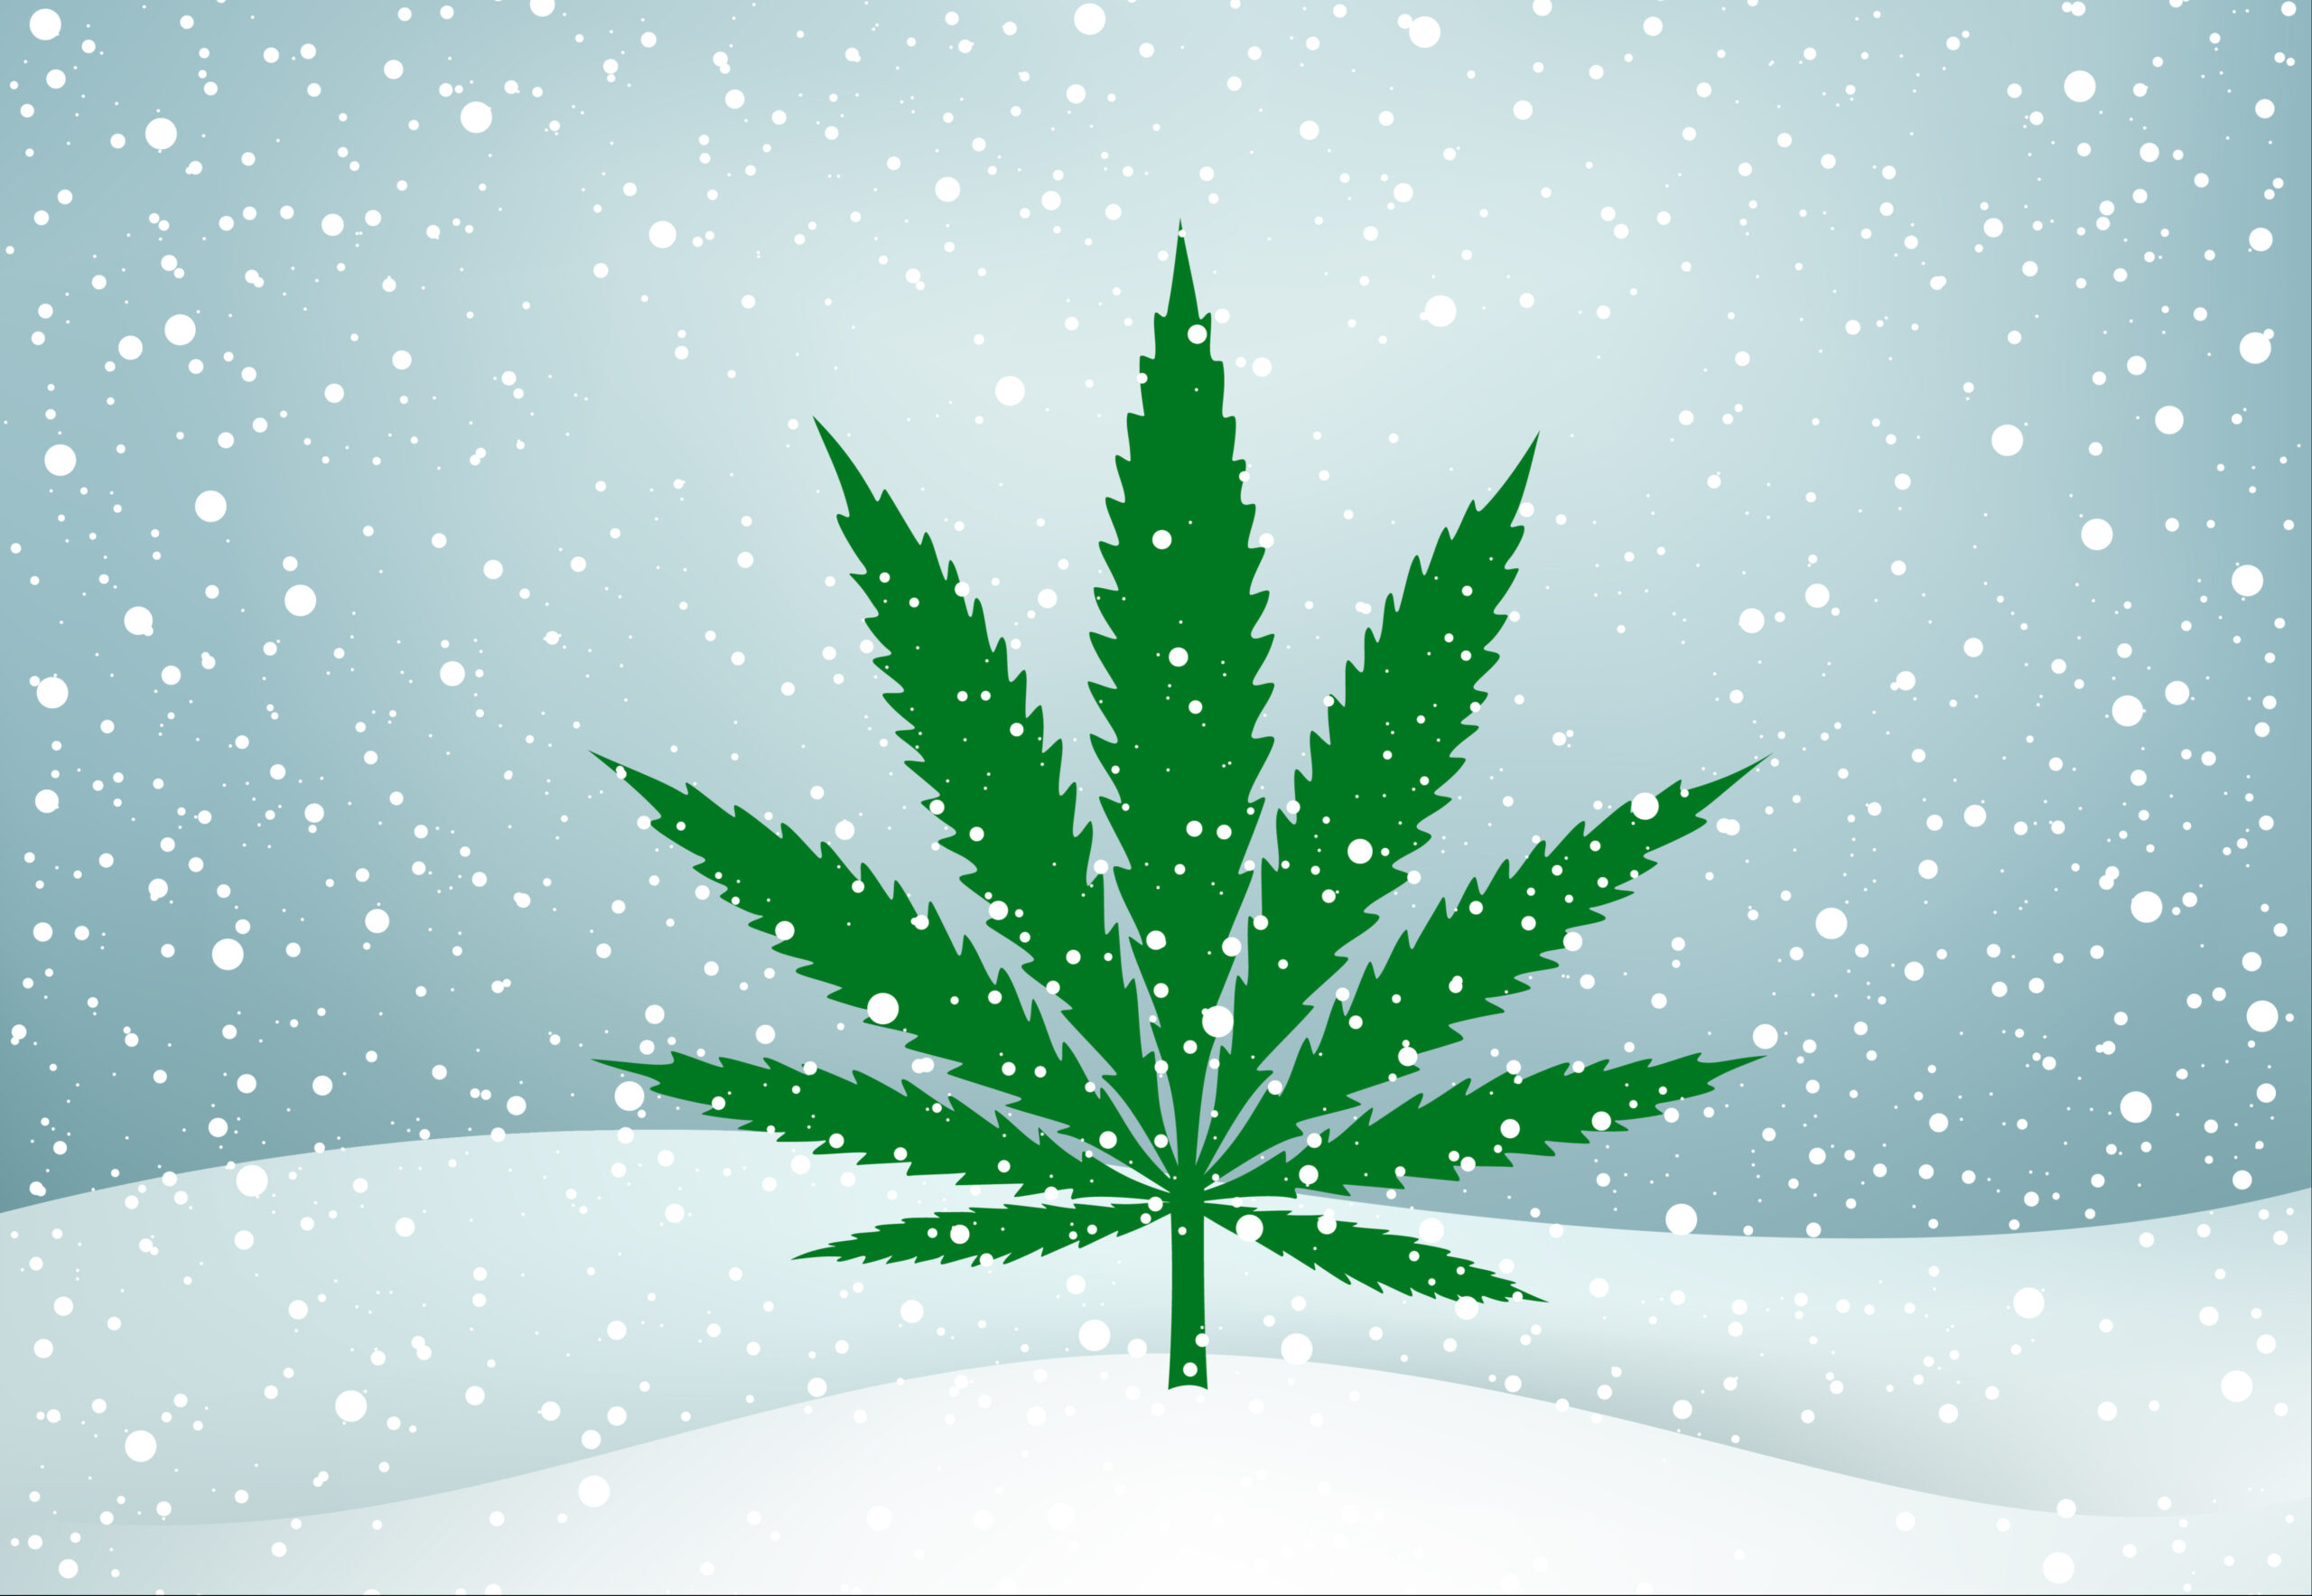 Cozy cannabis picks: Products to try while snuggling up this snowy weekend